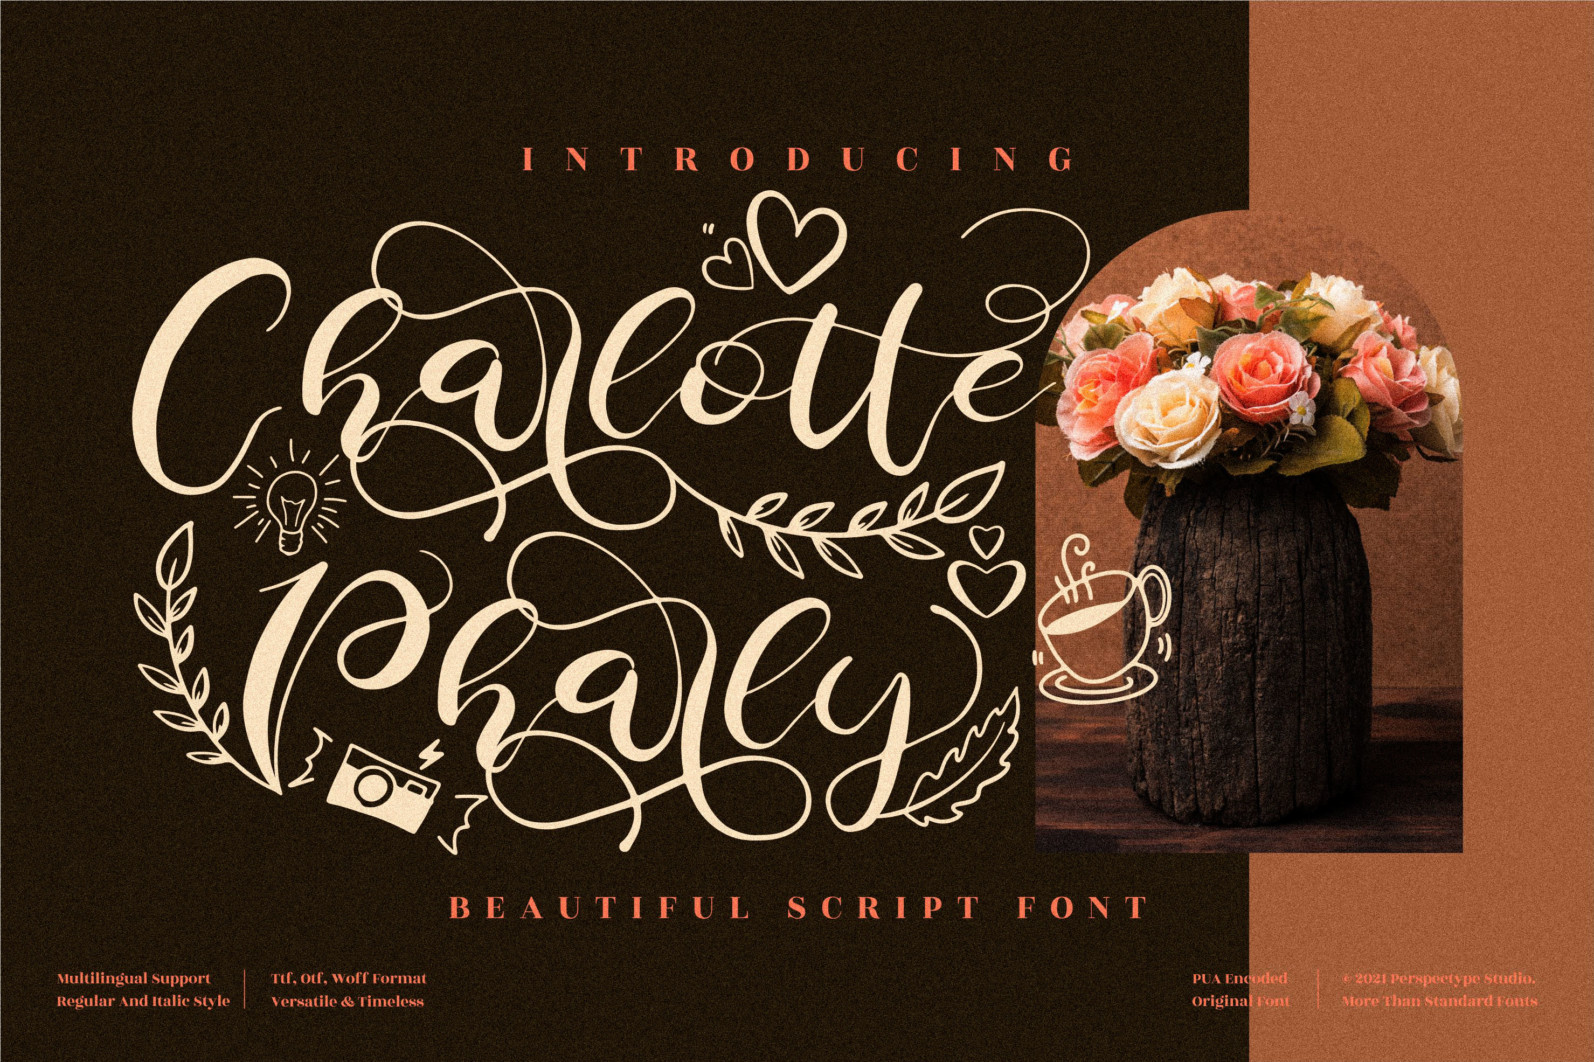 Love love Font Bundle from Perspectype Studio - 11 1 64 scaled -